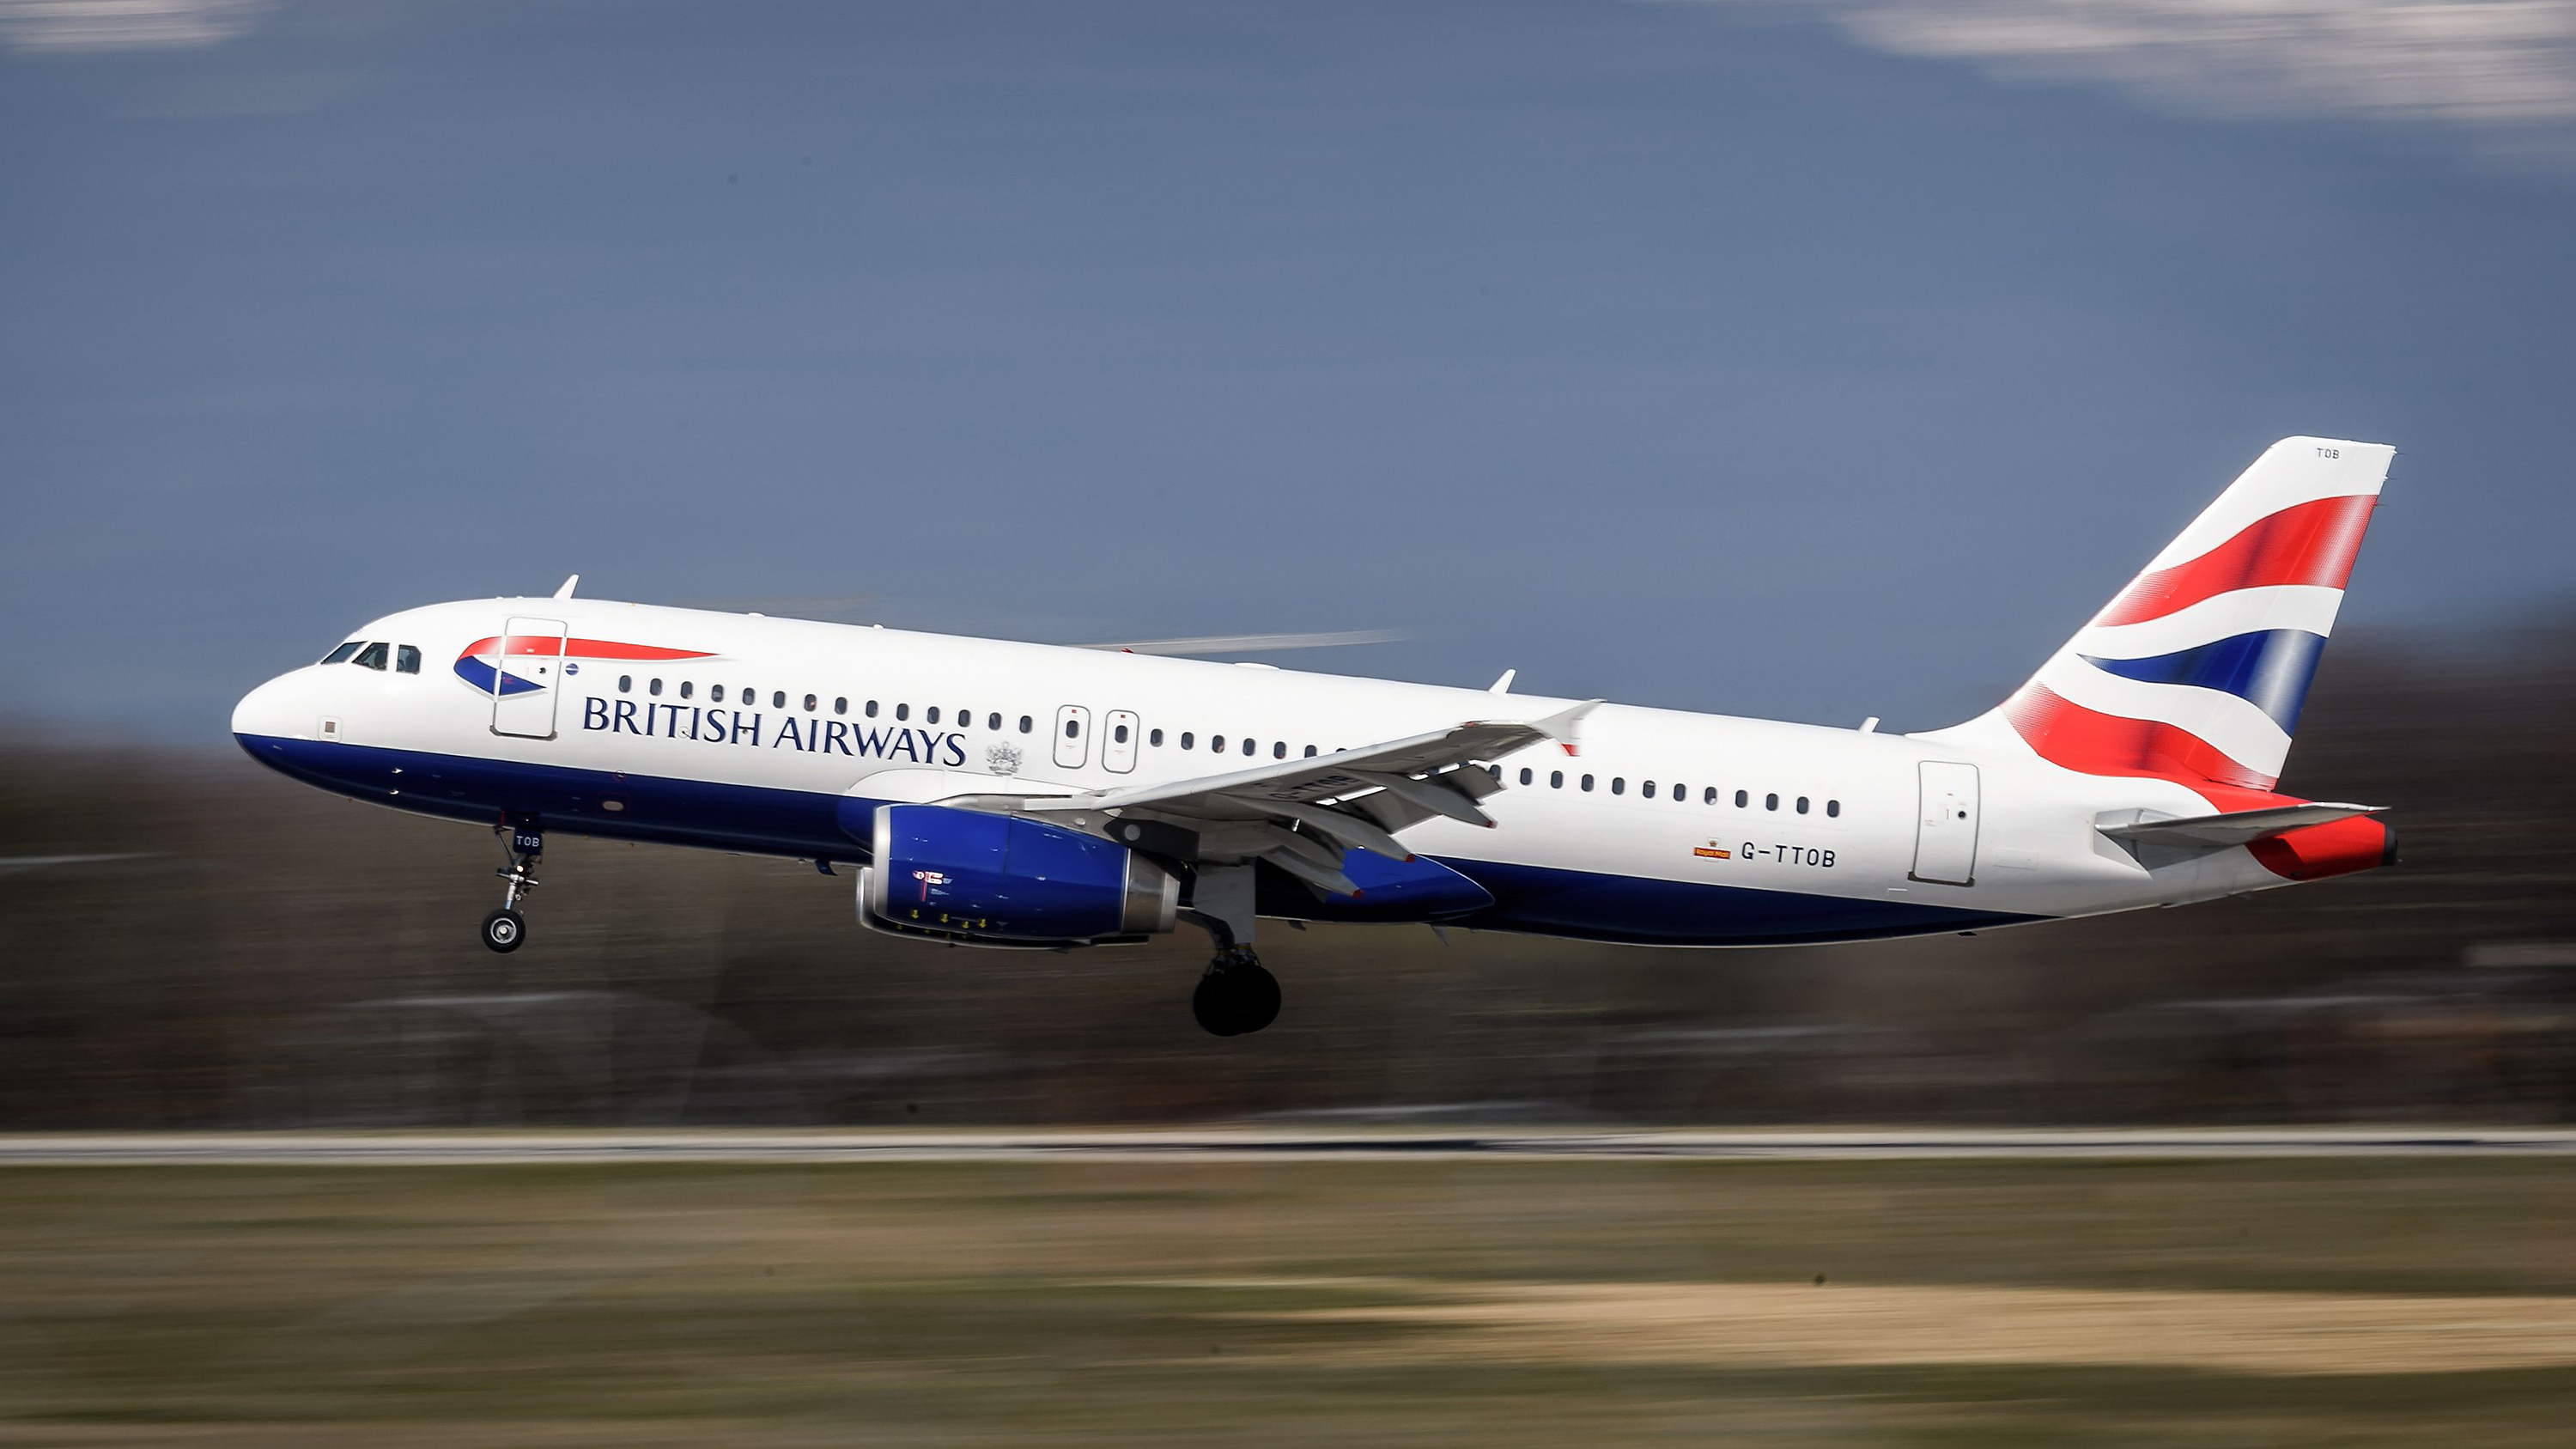 British Airways has joined other airlines in diverting flights from the region.